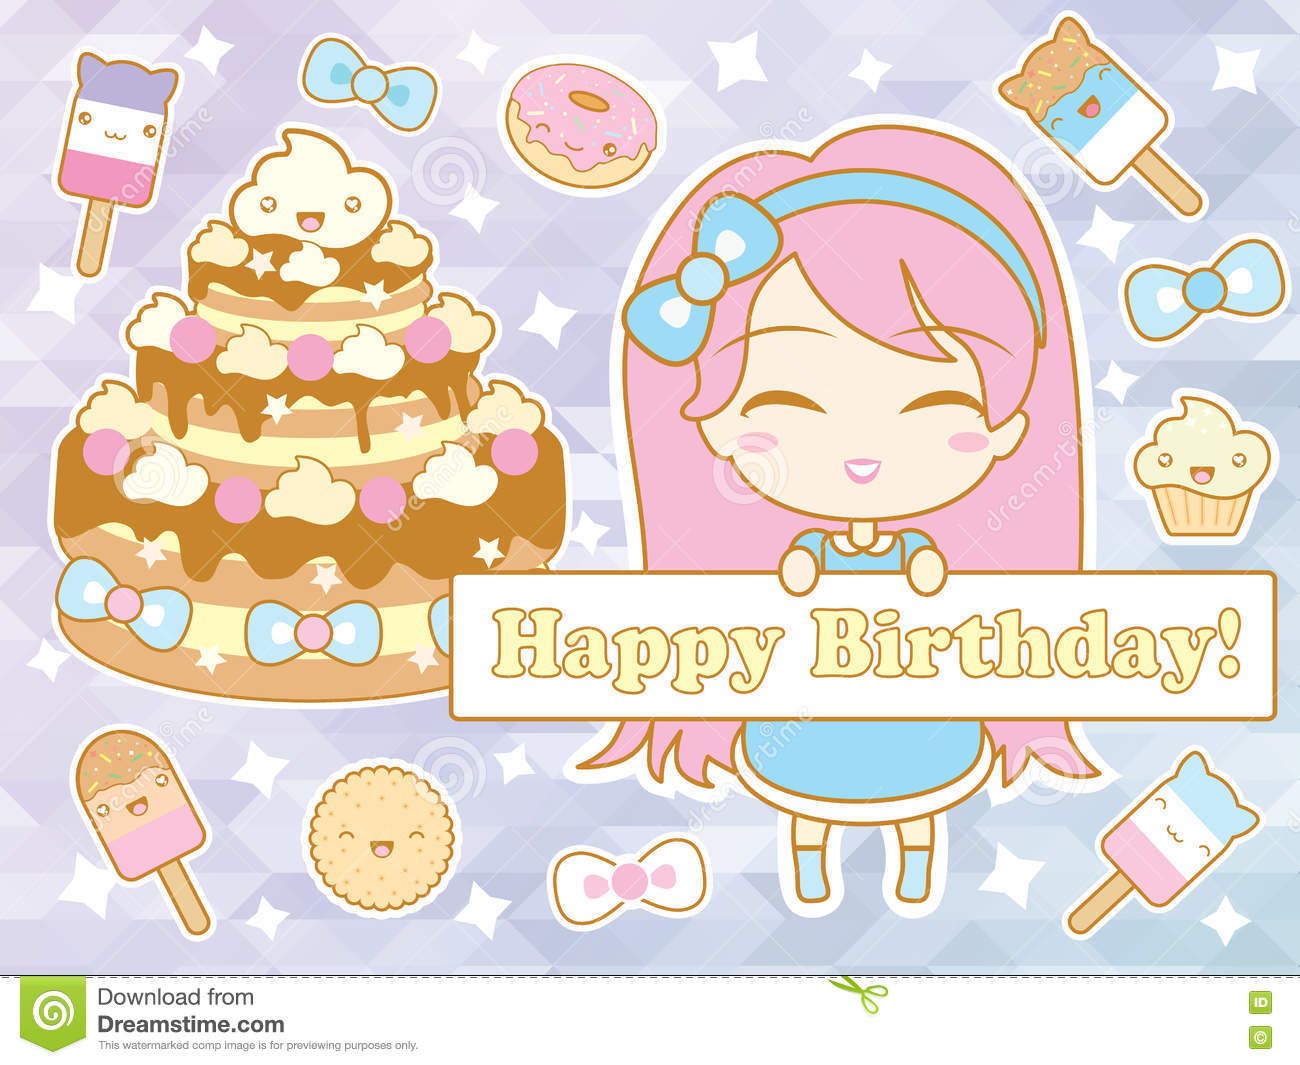 Completely Satisfied Birthday Wallpapers: Happy Birthday Card With Cute Smiling Cartoon Chibi Girl